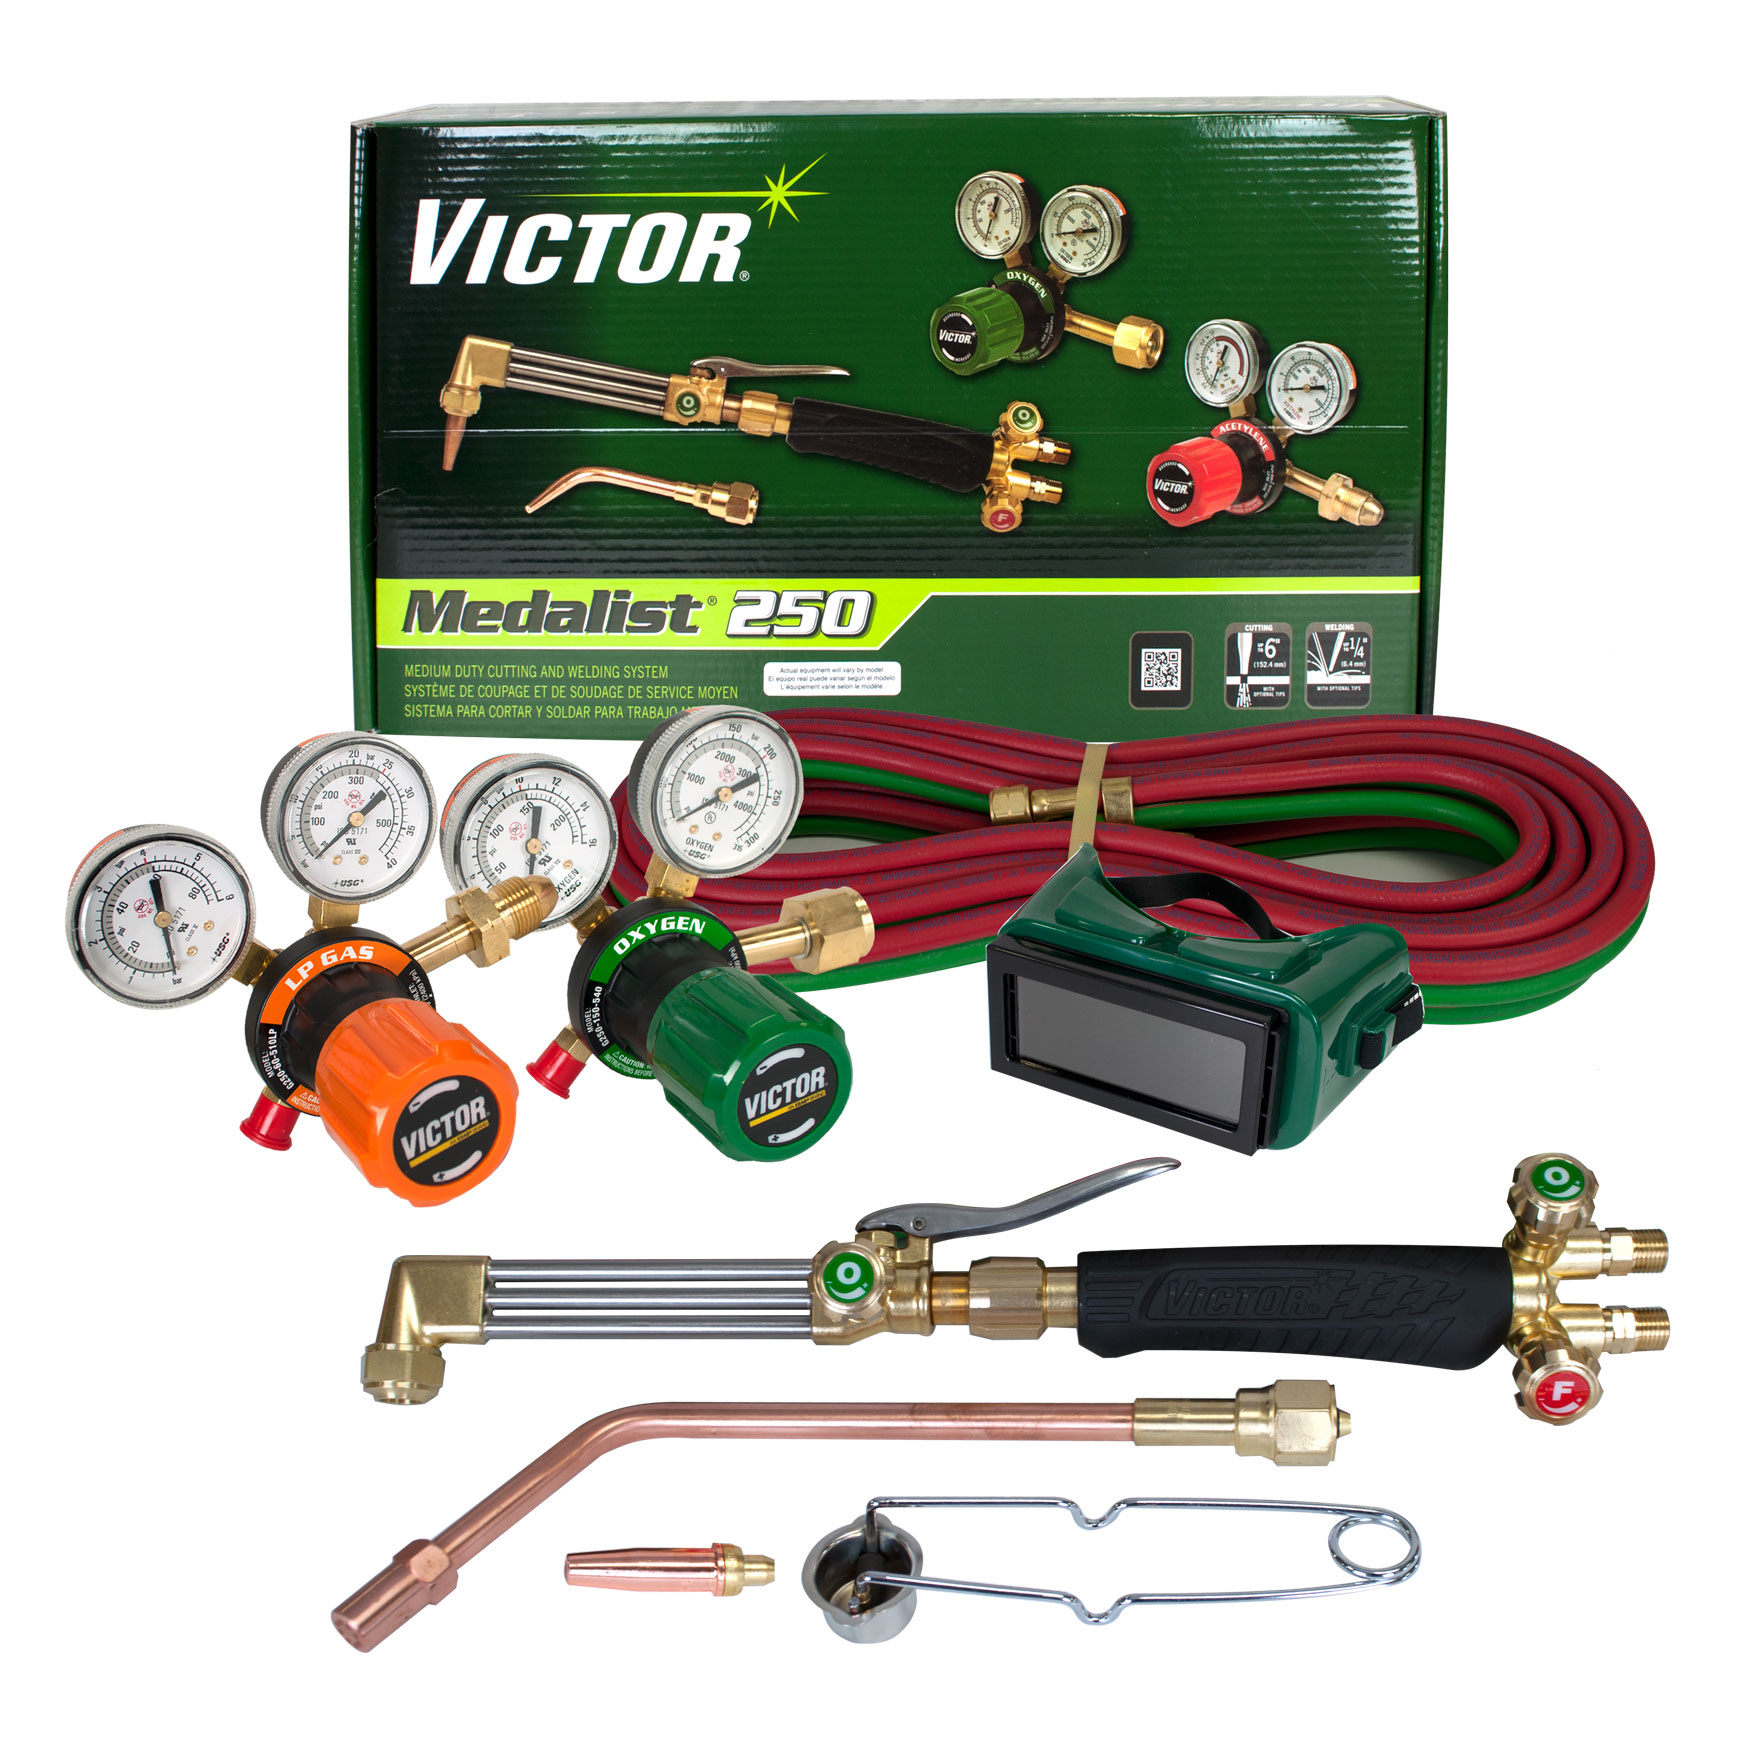 Victor 0384-2544 Medalist 250, AF 510LP Propane Cutting Torch Outfit by Victor Equipment